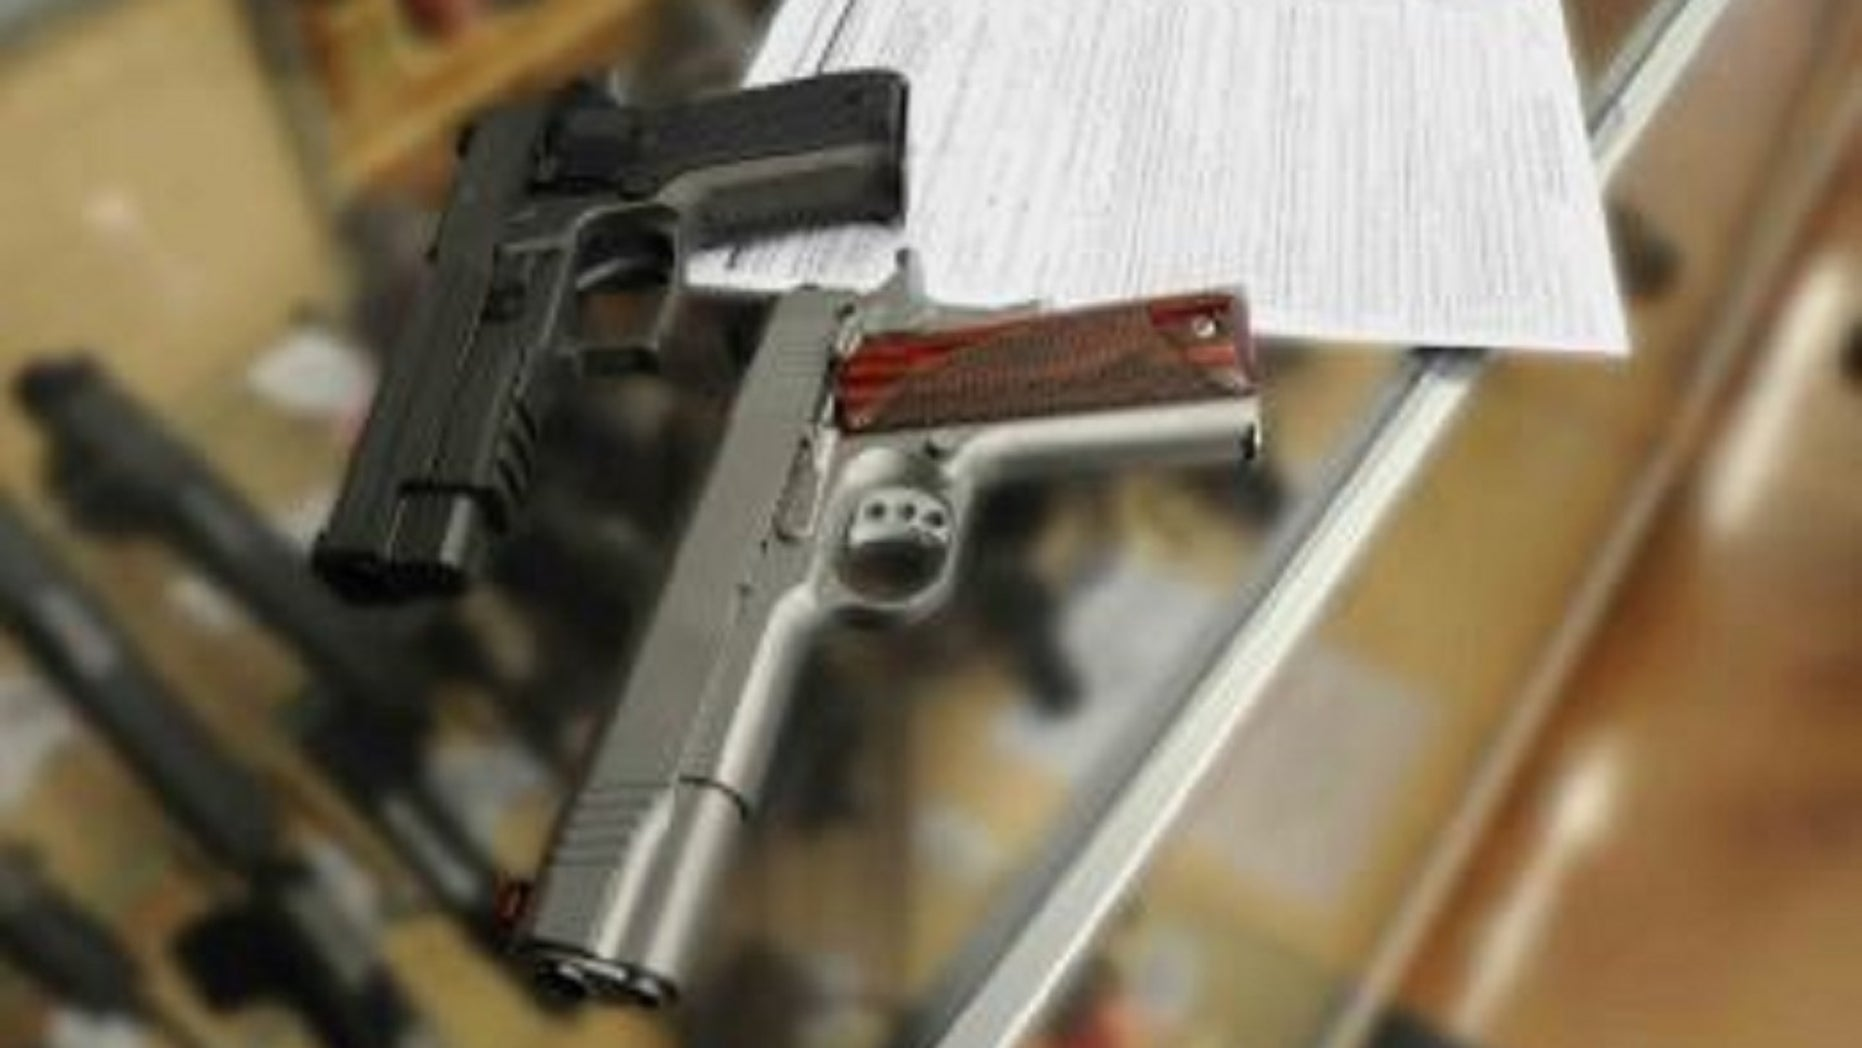 A German court ruled a man isn't fit to carry a firearms license after his dog shot him with a rifle.